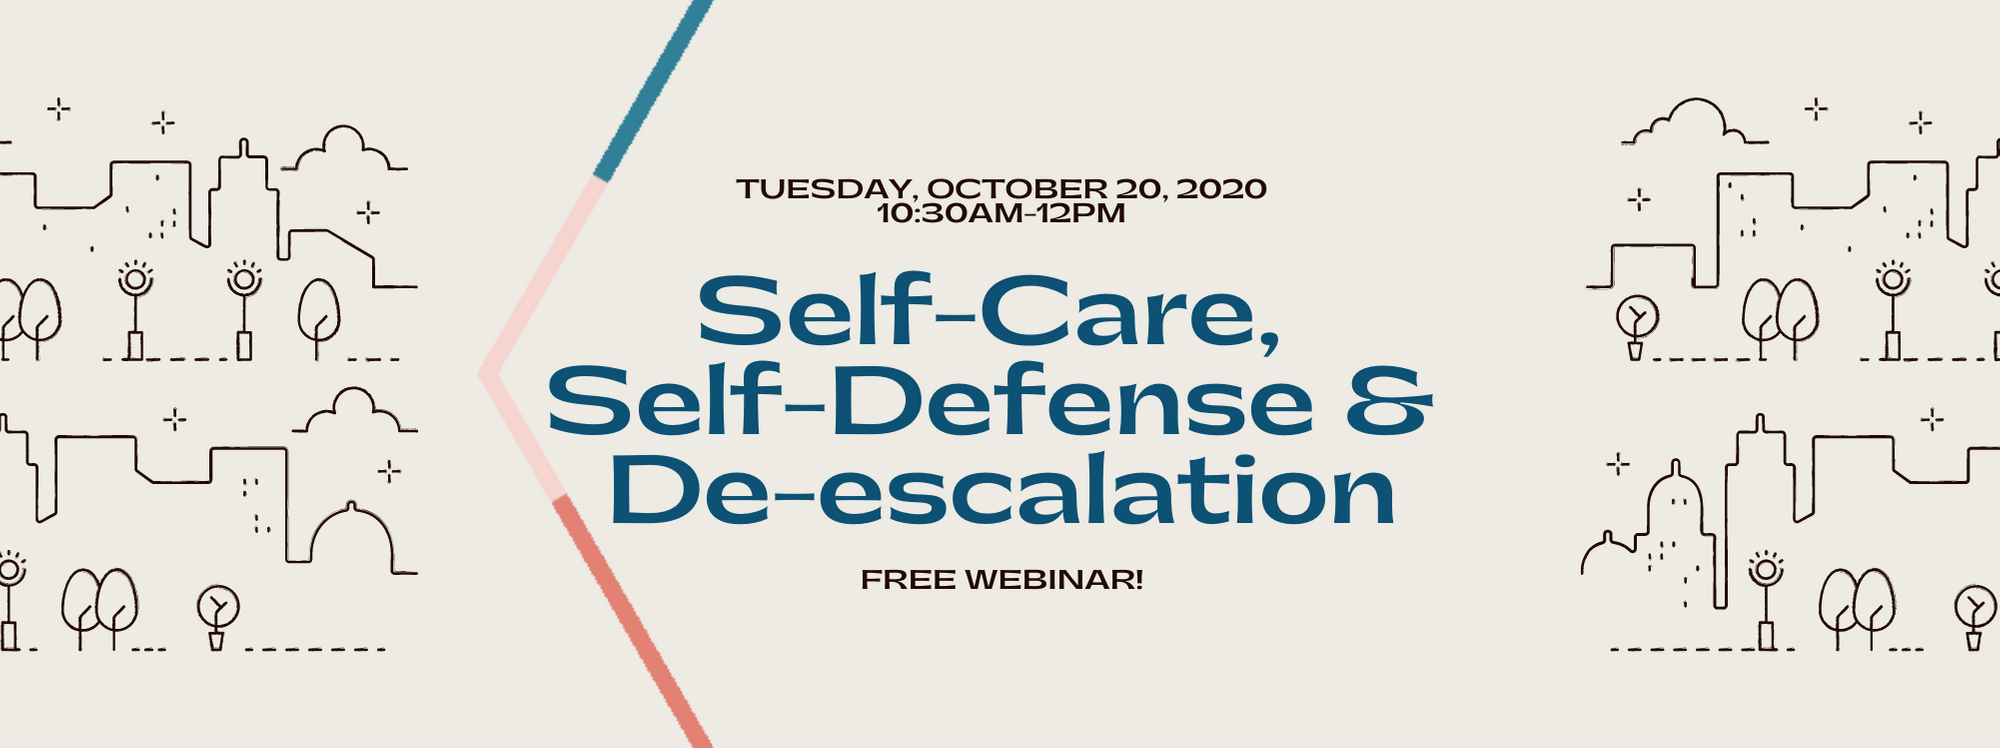 Self-Care, Self-Defense, De-escalation